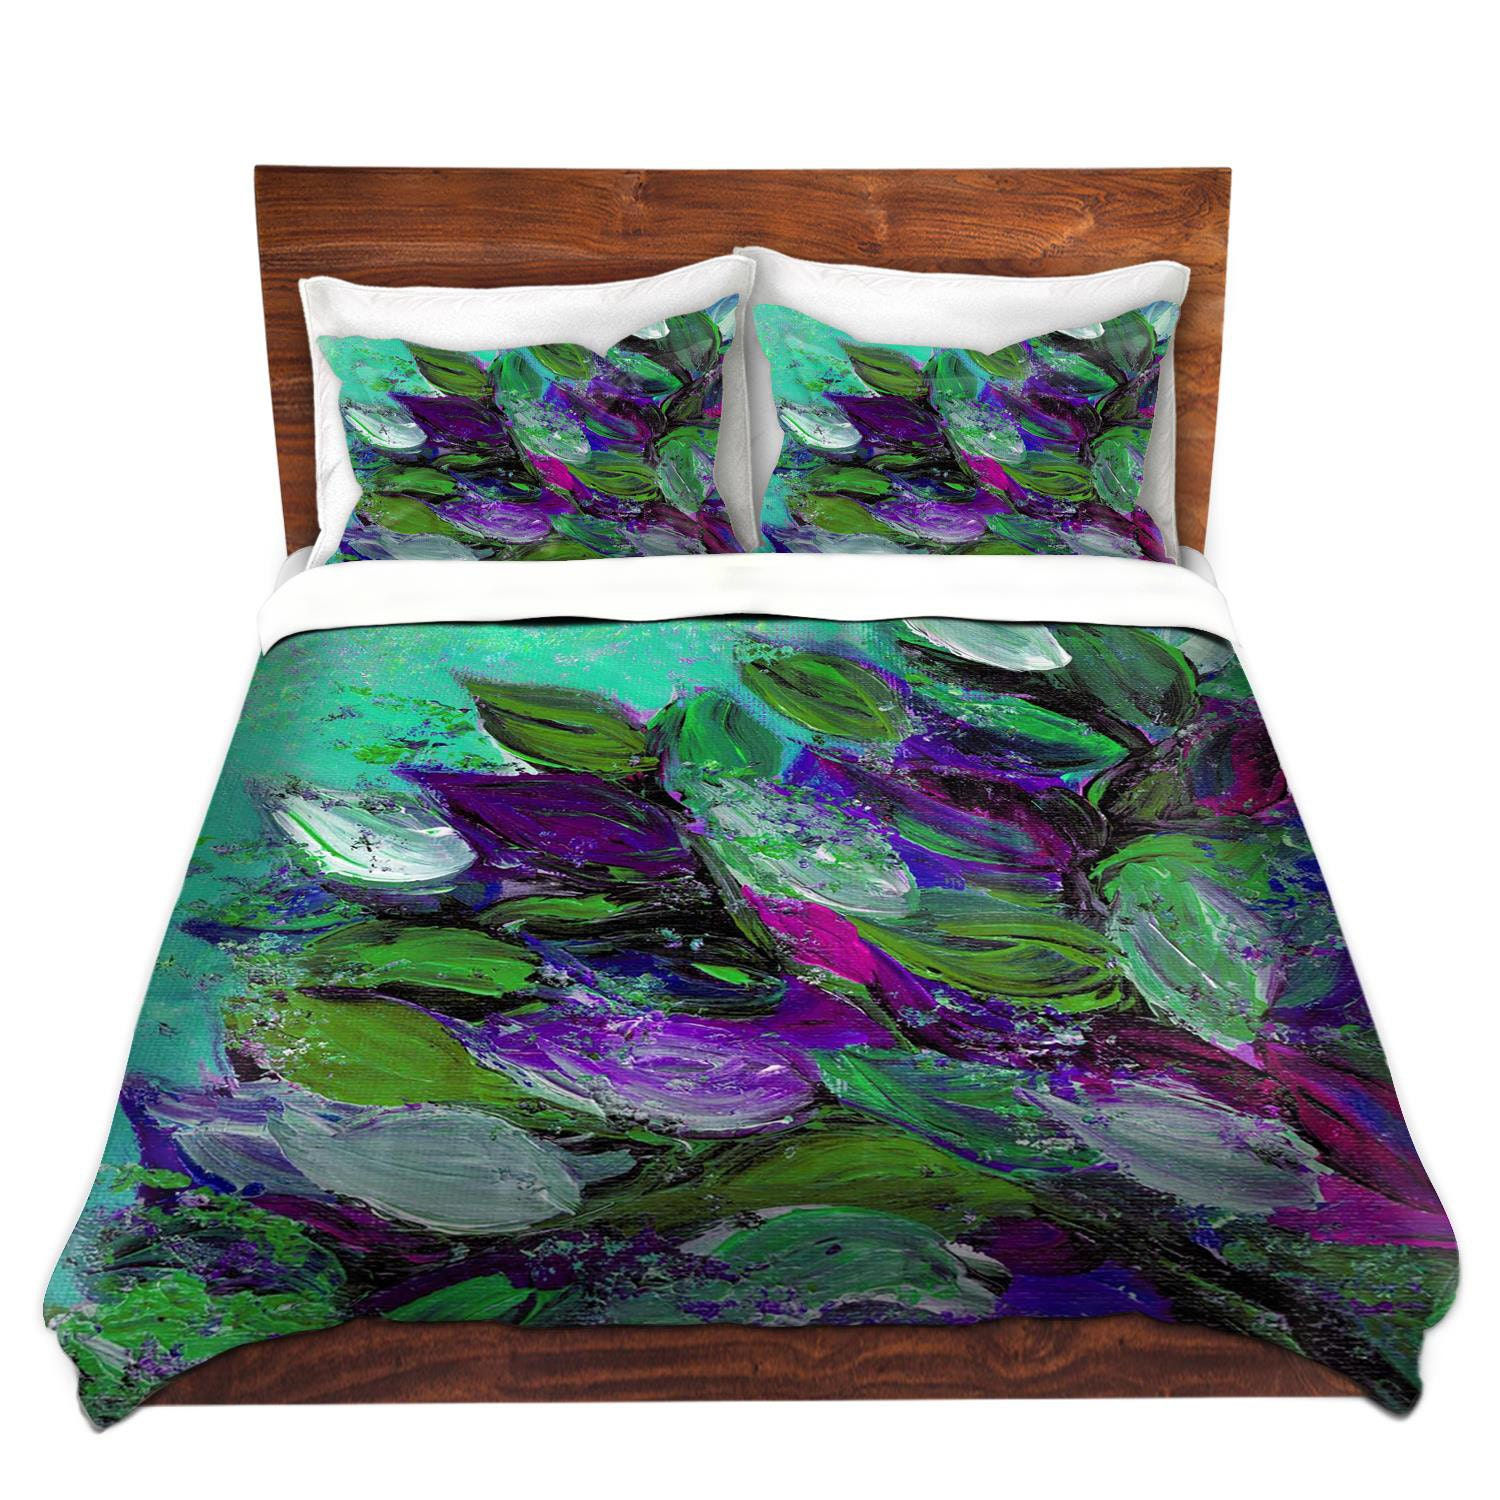 king appletree enlarge click cover anthonyryans set products grass com duvet meadow green to